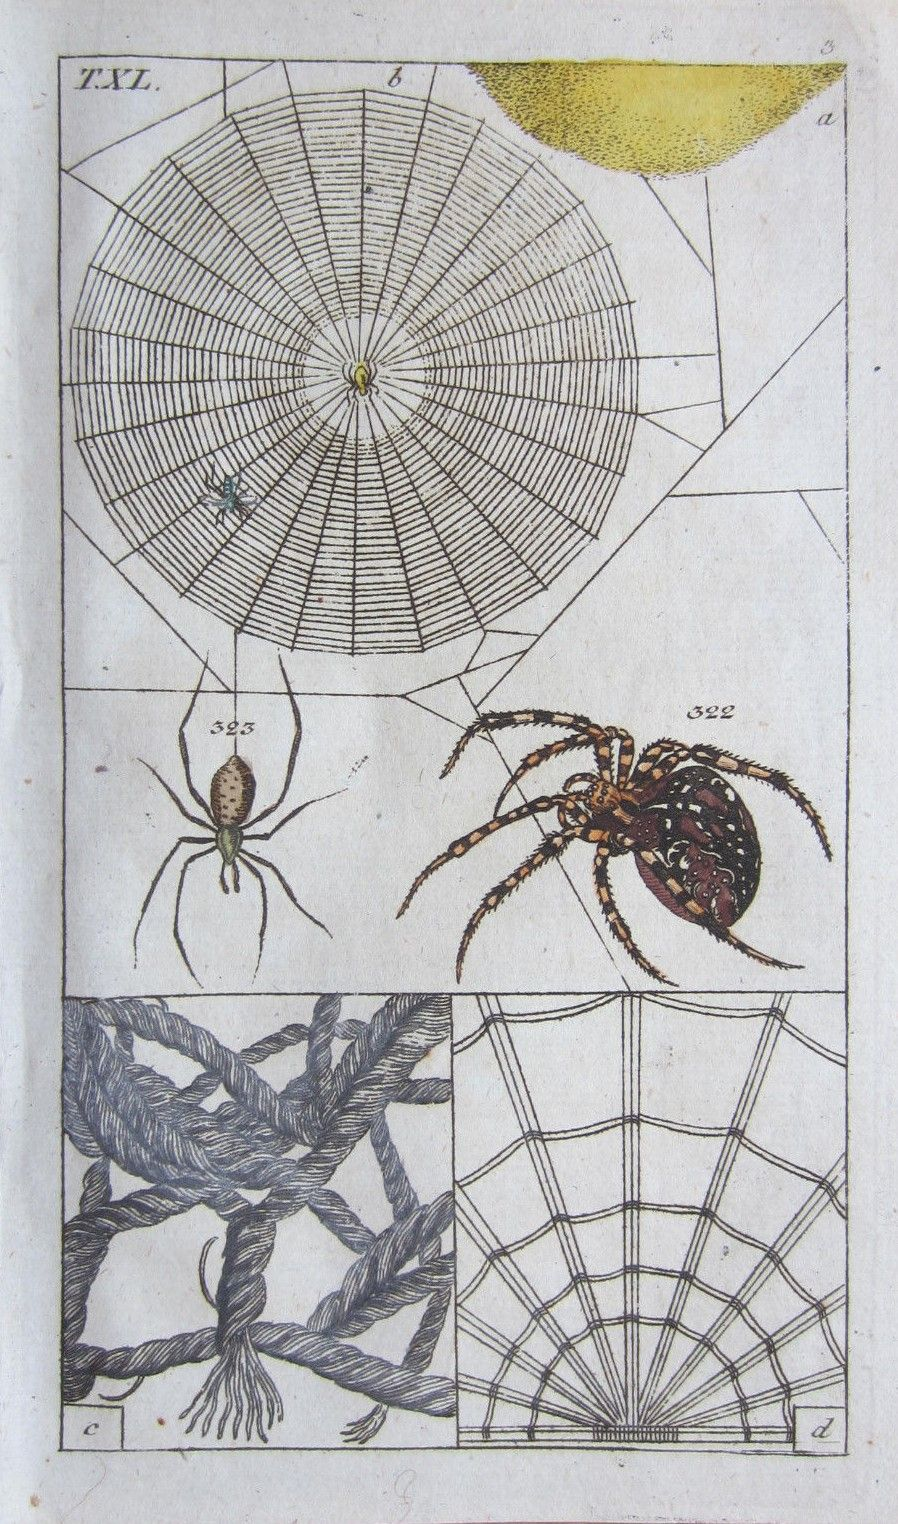 Engraving of a Cross Spider.